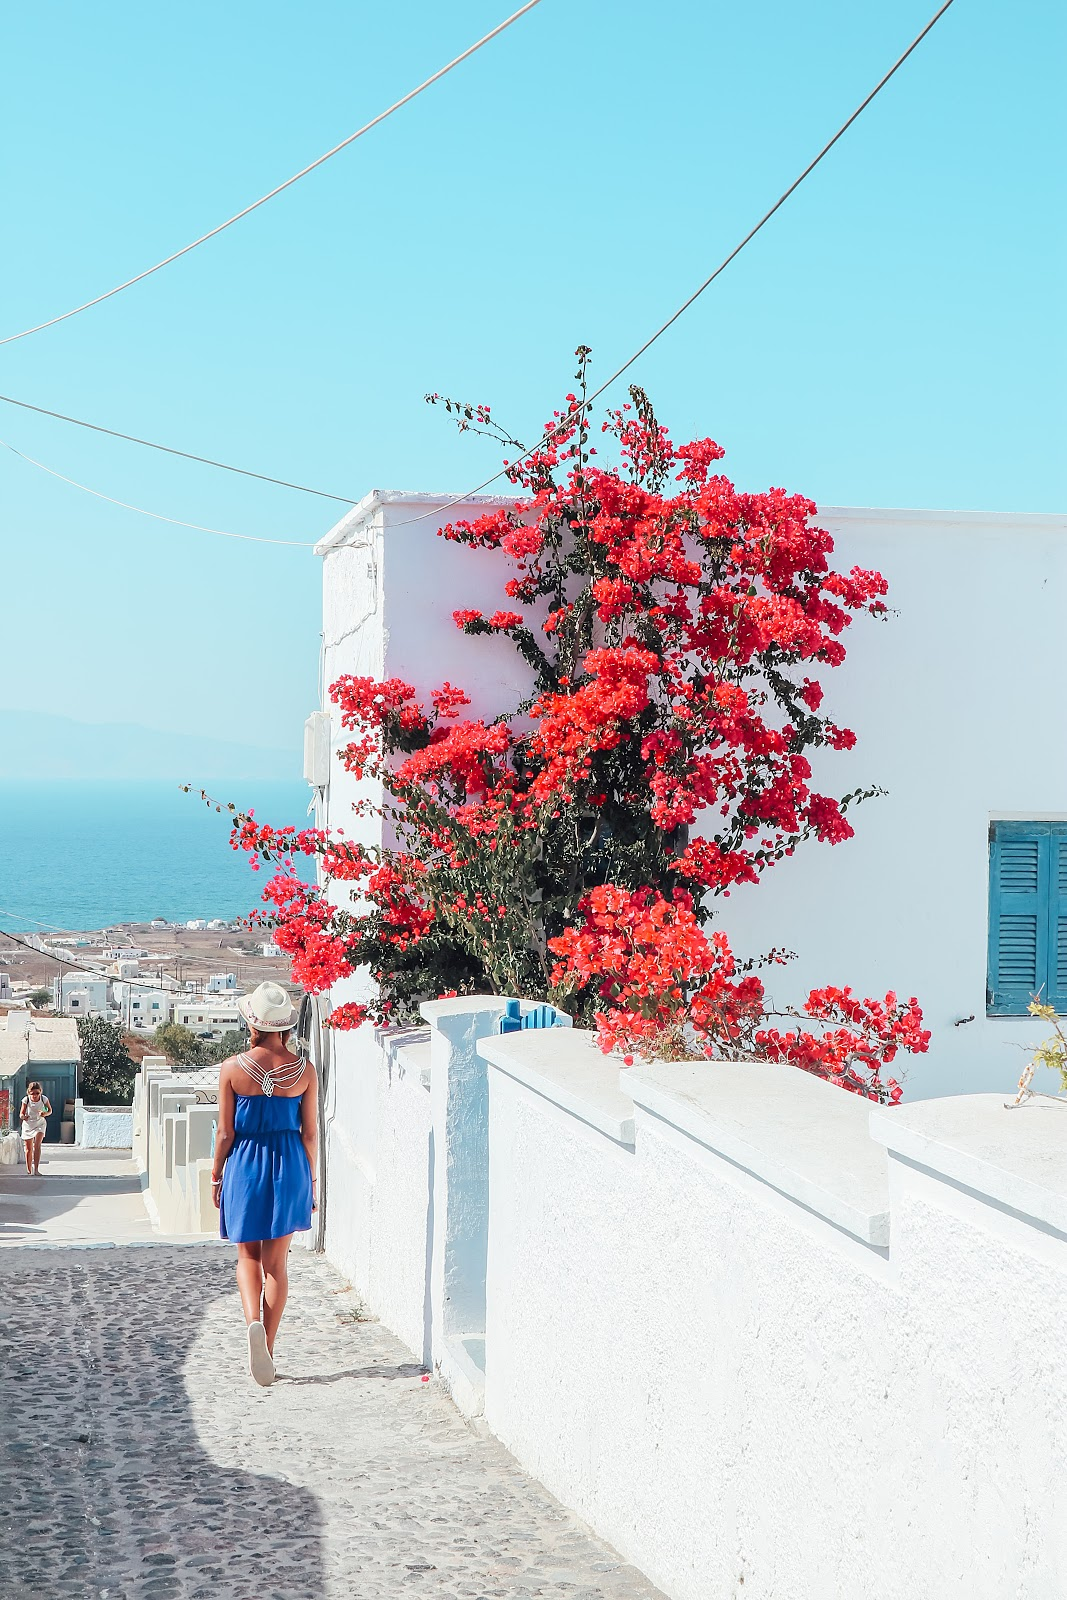 Walking the small streets of Oia